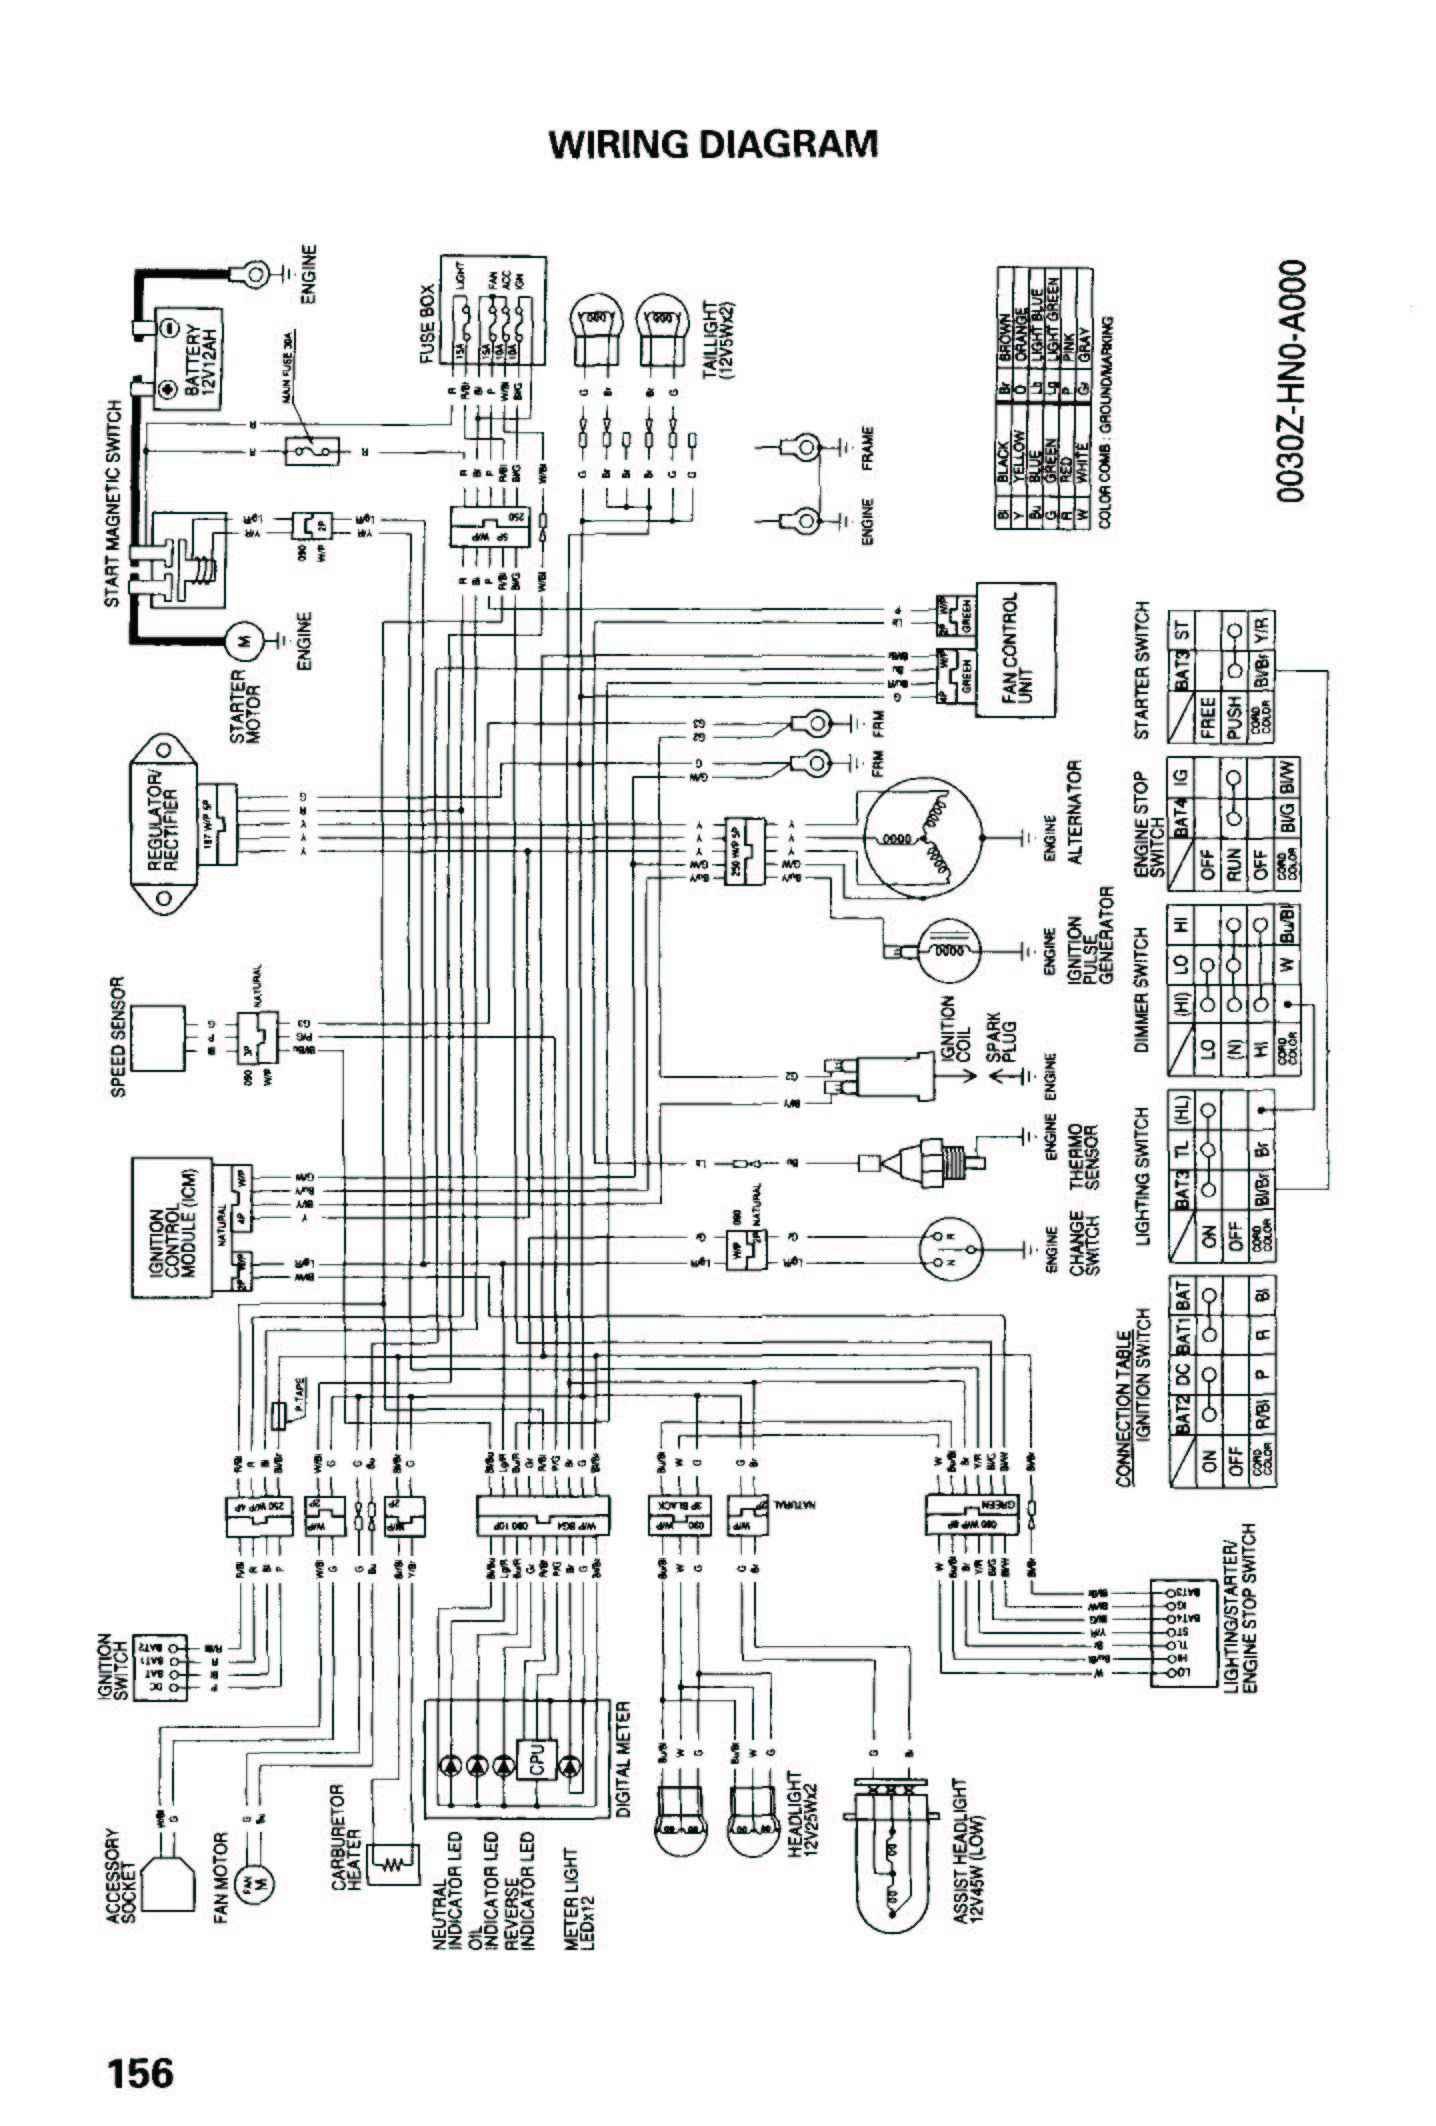 WRG-4423] 2002 400ex Wiring Diagram on